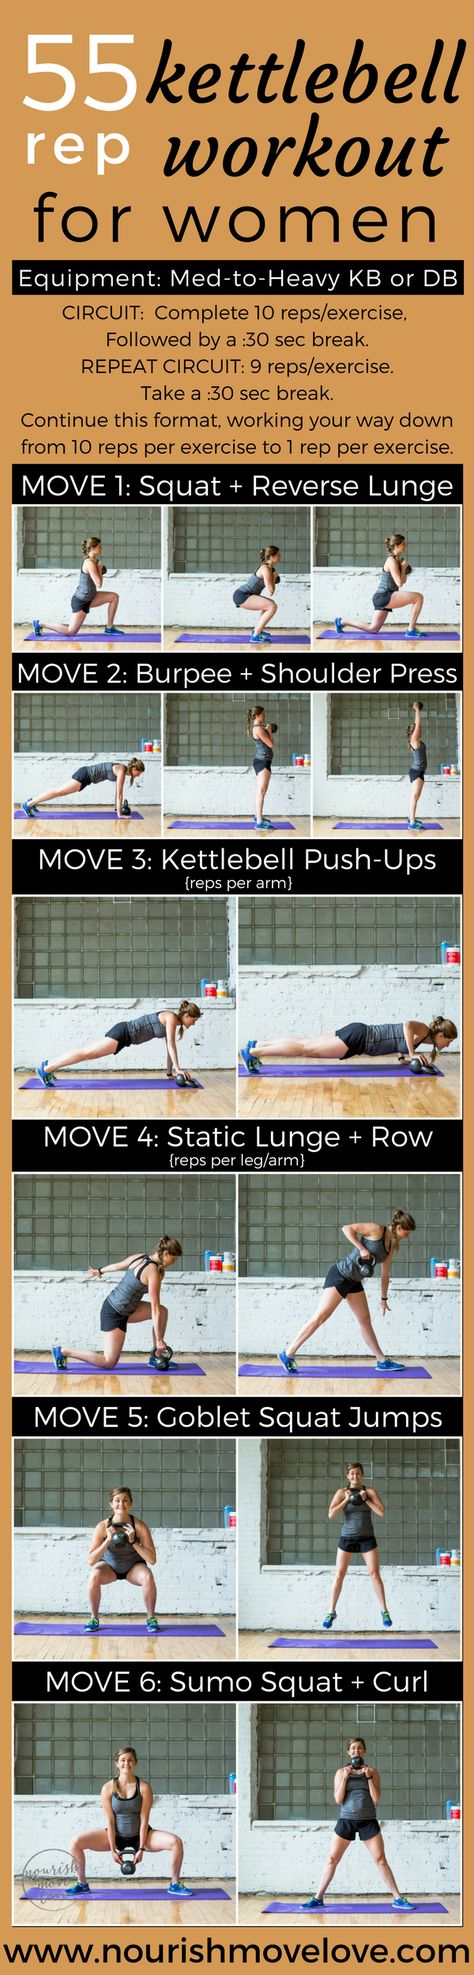 Strength + Conditioning Kettlebell Workout   Nourish Move Love